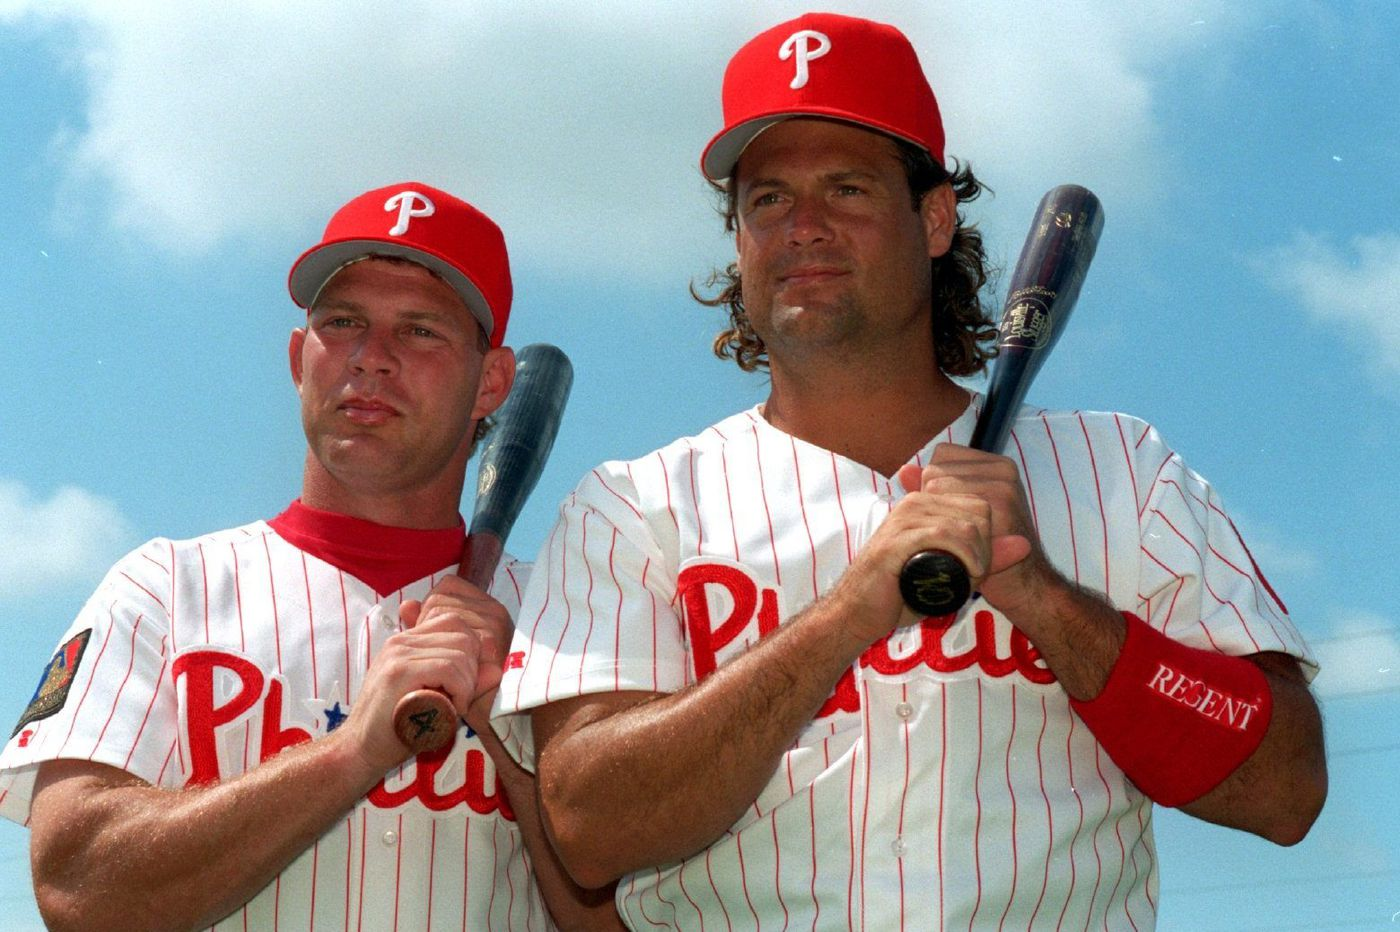 Tribute to '93 Phillies not the same without Darren Daulton and Lenny Dykstra | Bob Brookover